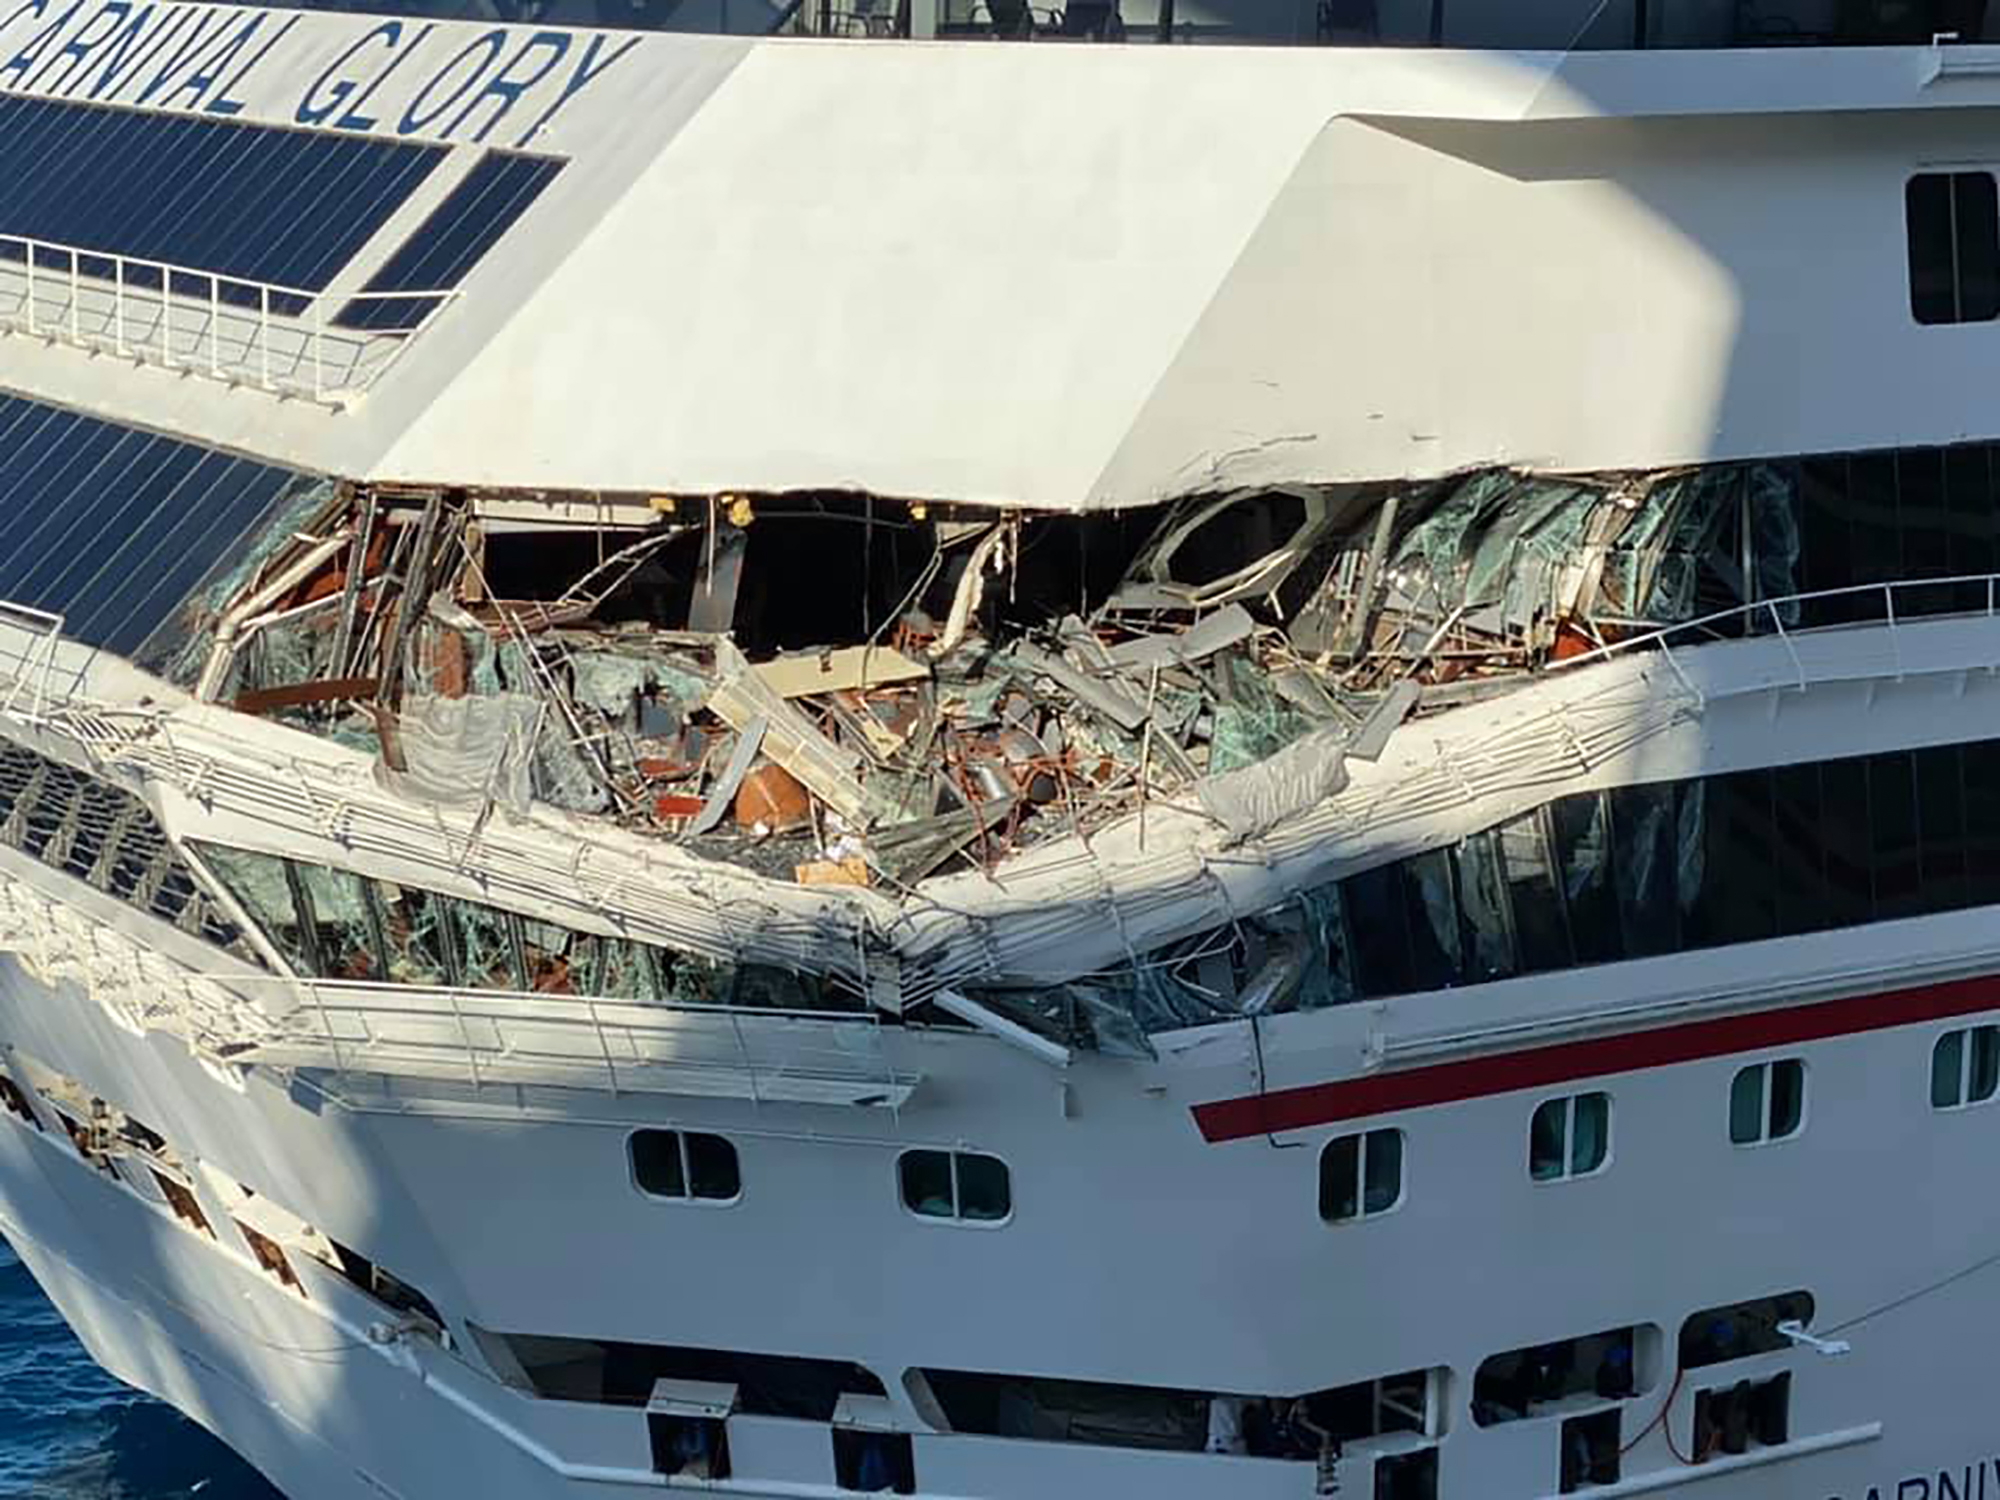 Watch Two Carnival Cruise Ships Collide Cnn Video